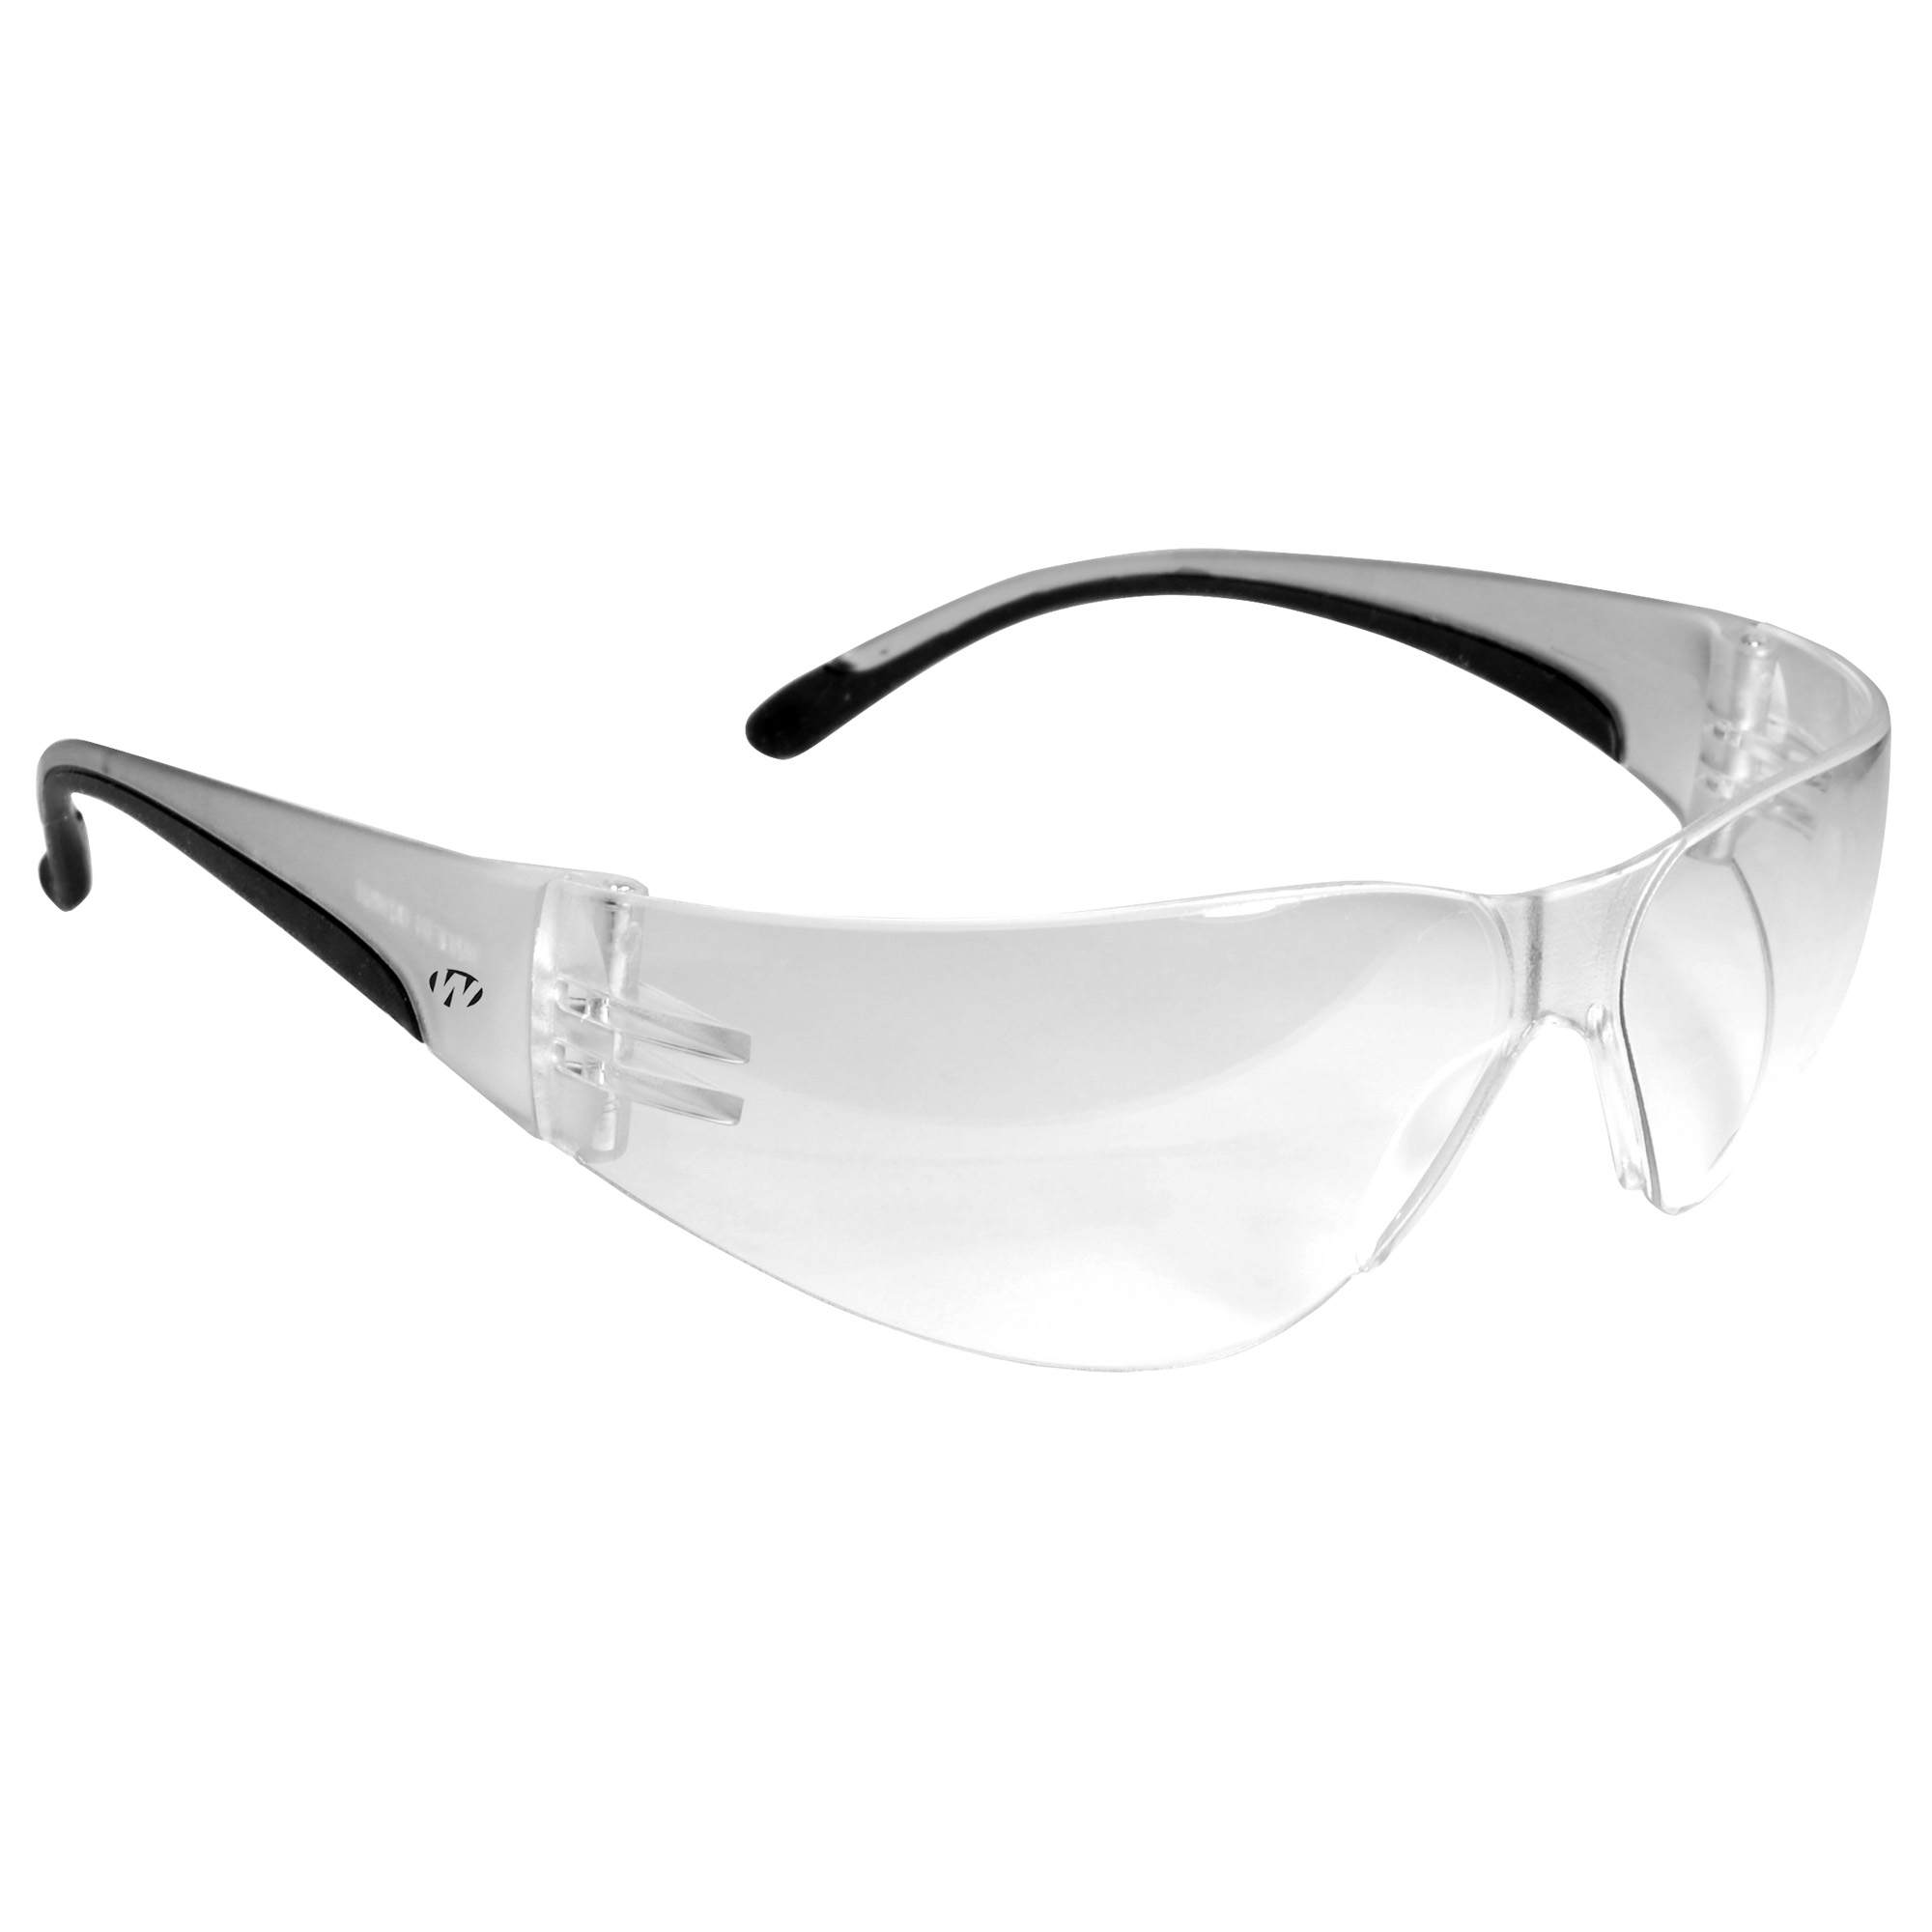 Walkers Youth/ Wmn Clr Lens Glasses